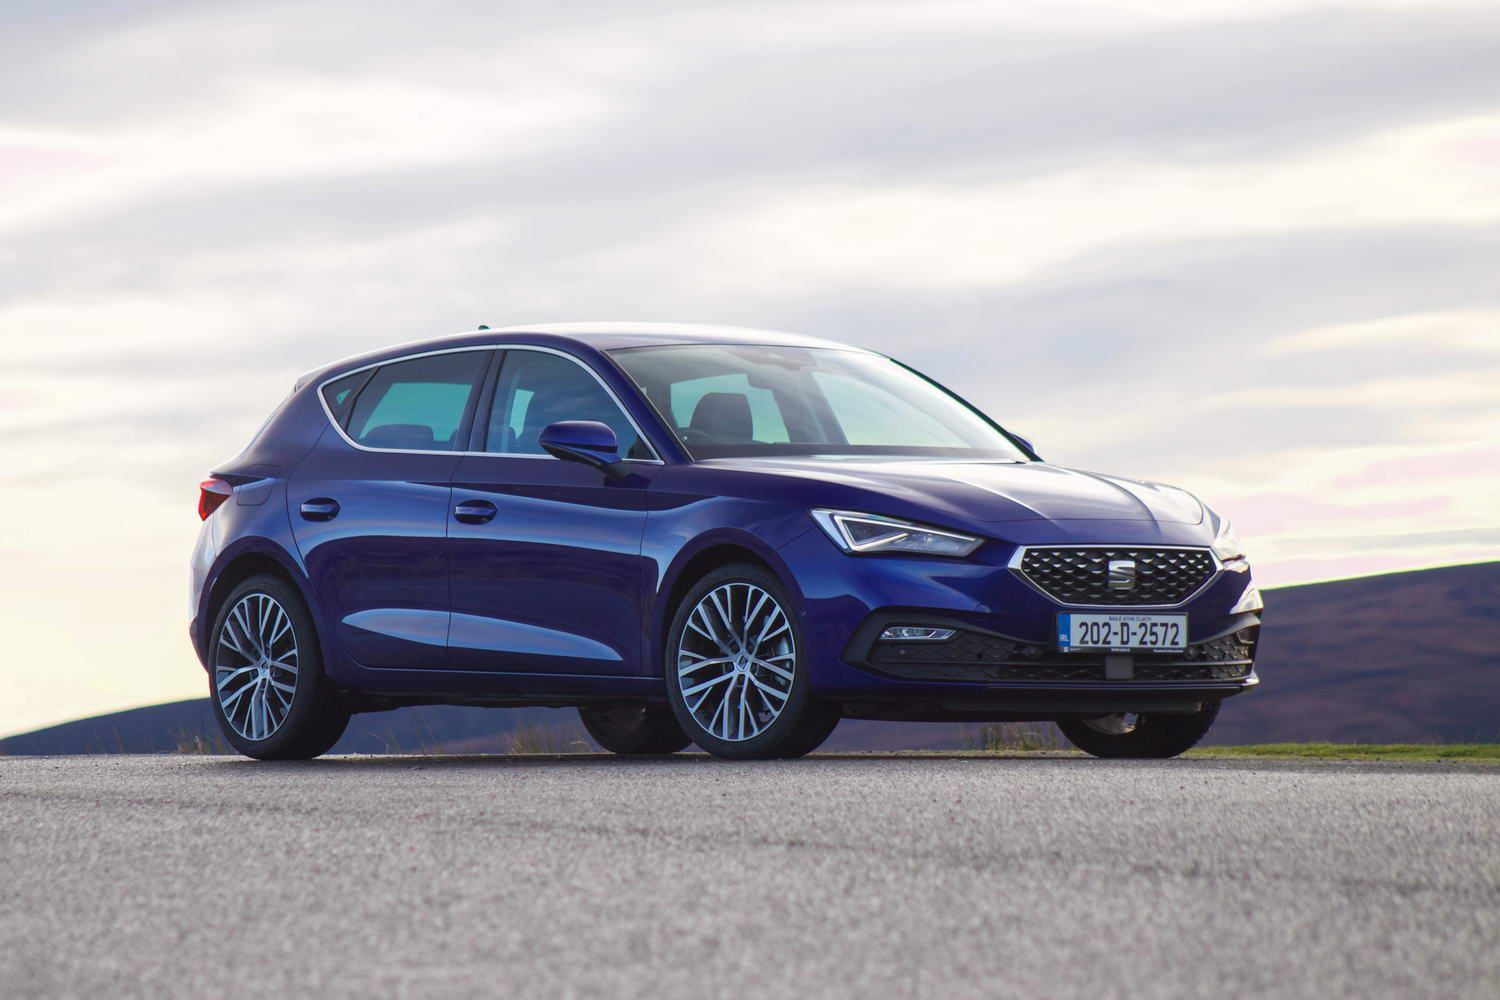 Car Reviews | SEAT Leon 1.5 TSI Xcellence (2020) | CompleteCar.ie